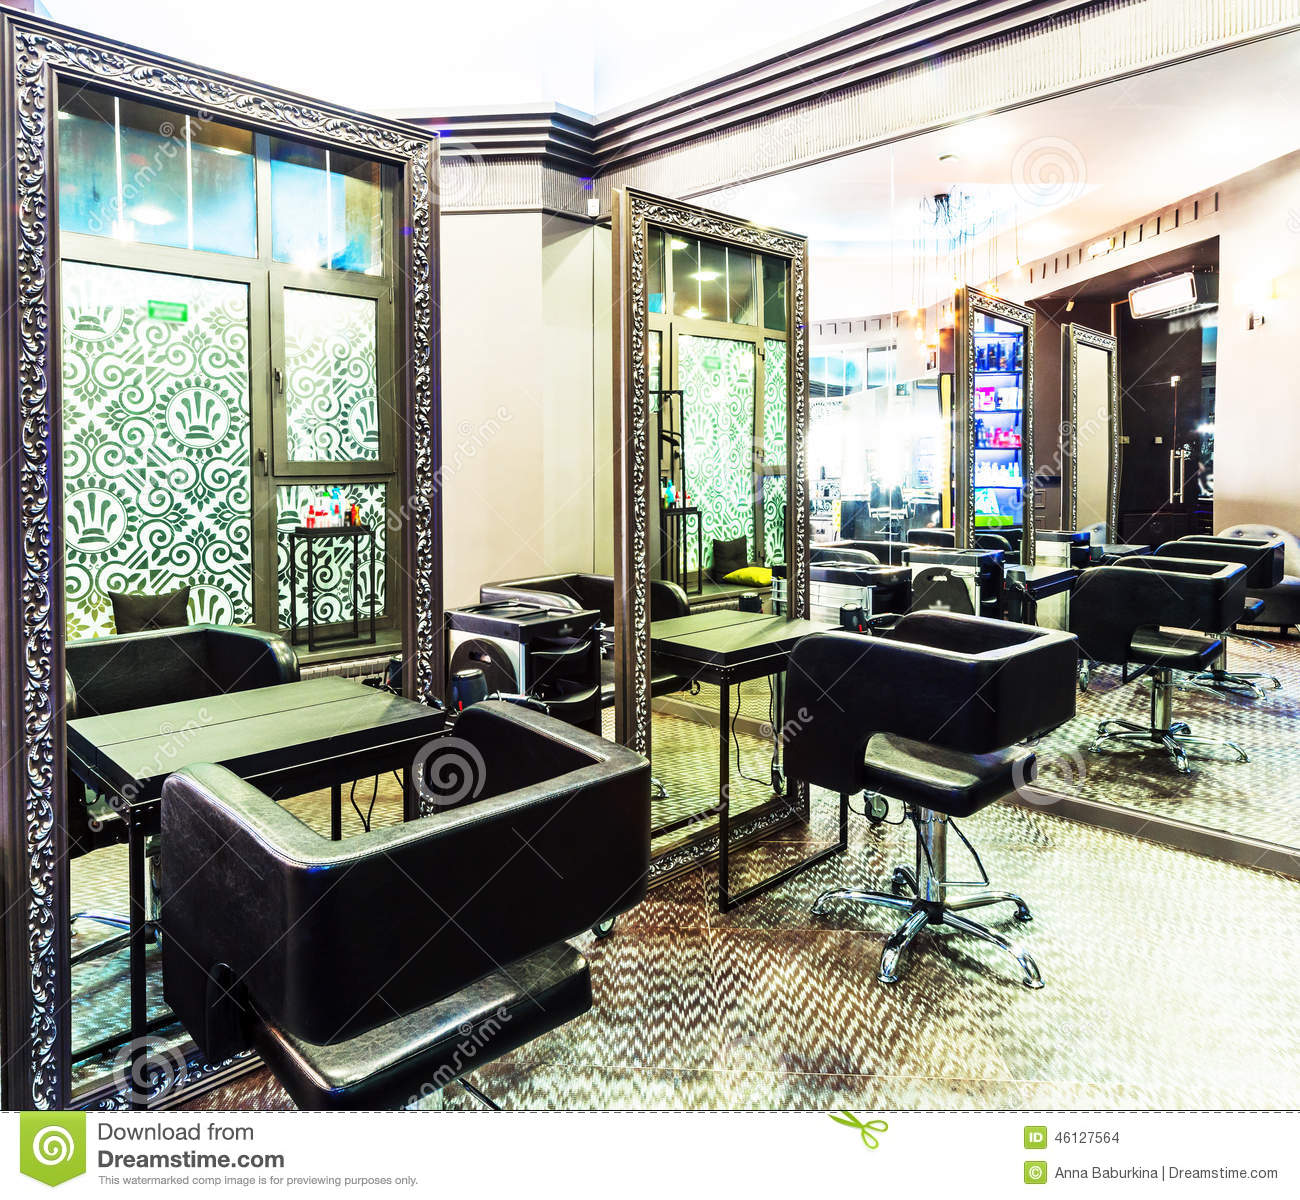 Salones De Belleza De Lujo Luxury Beauty Salon Stock Photo Image Of Lighting Inside 46127564